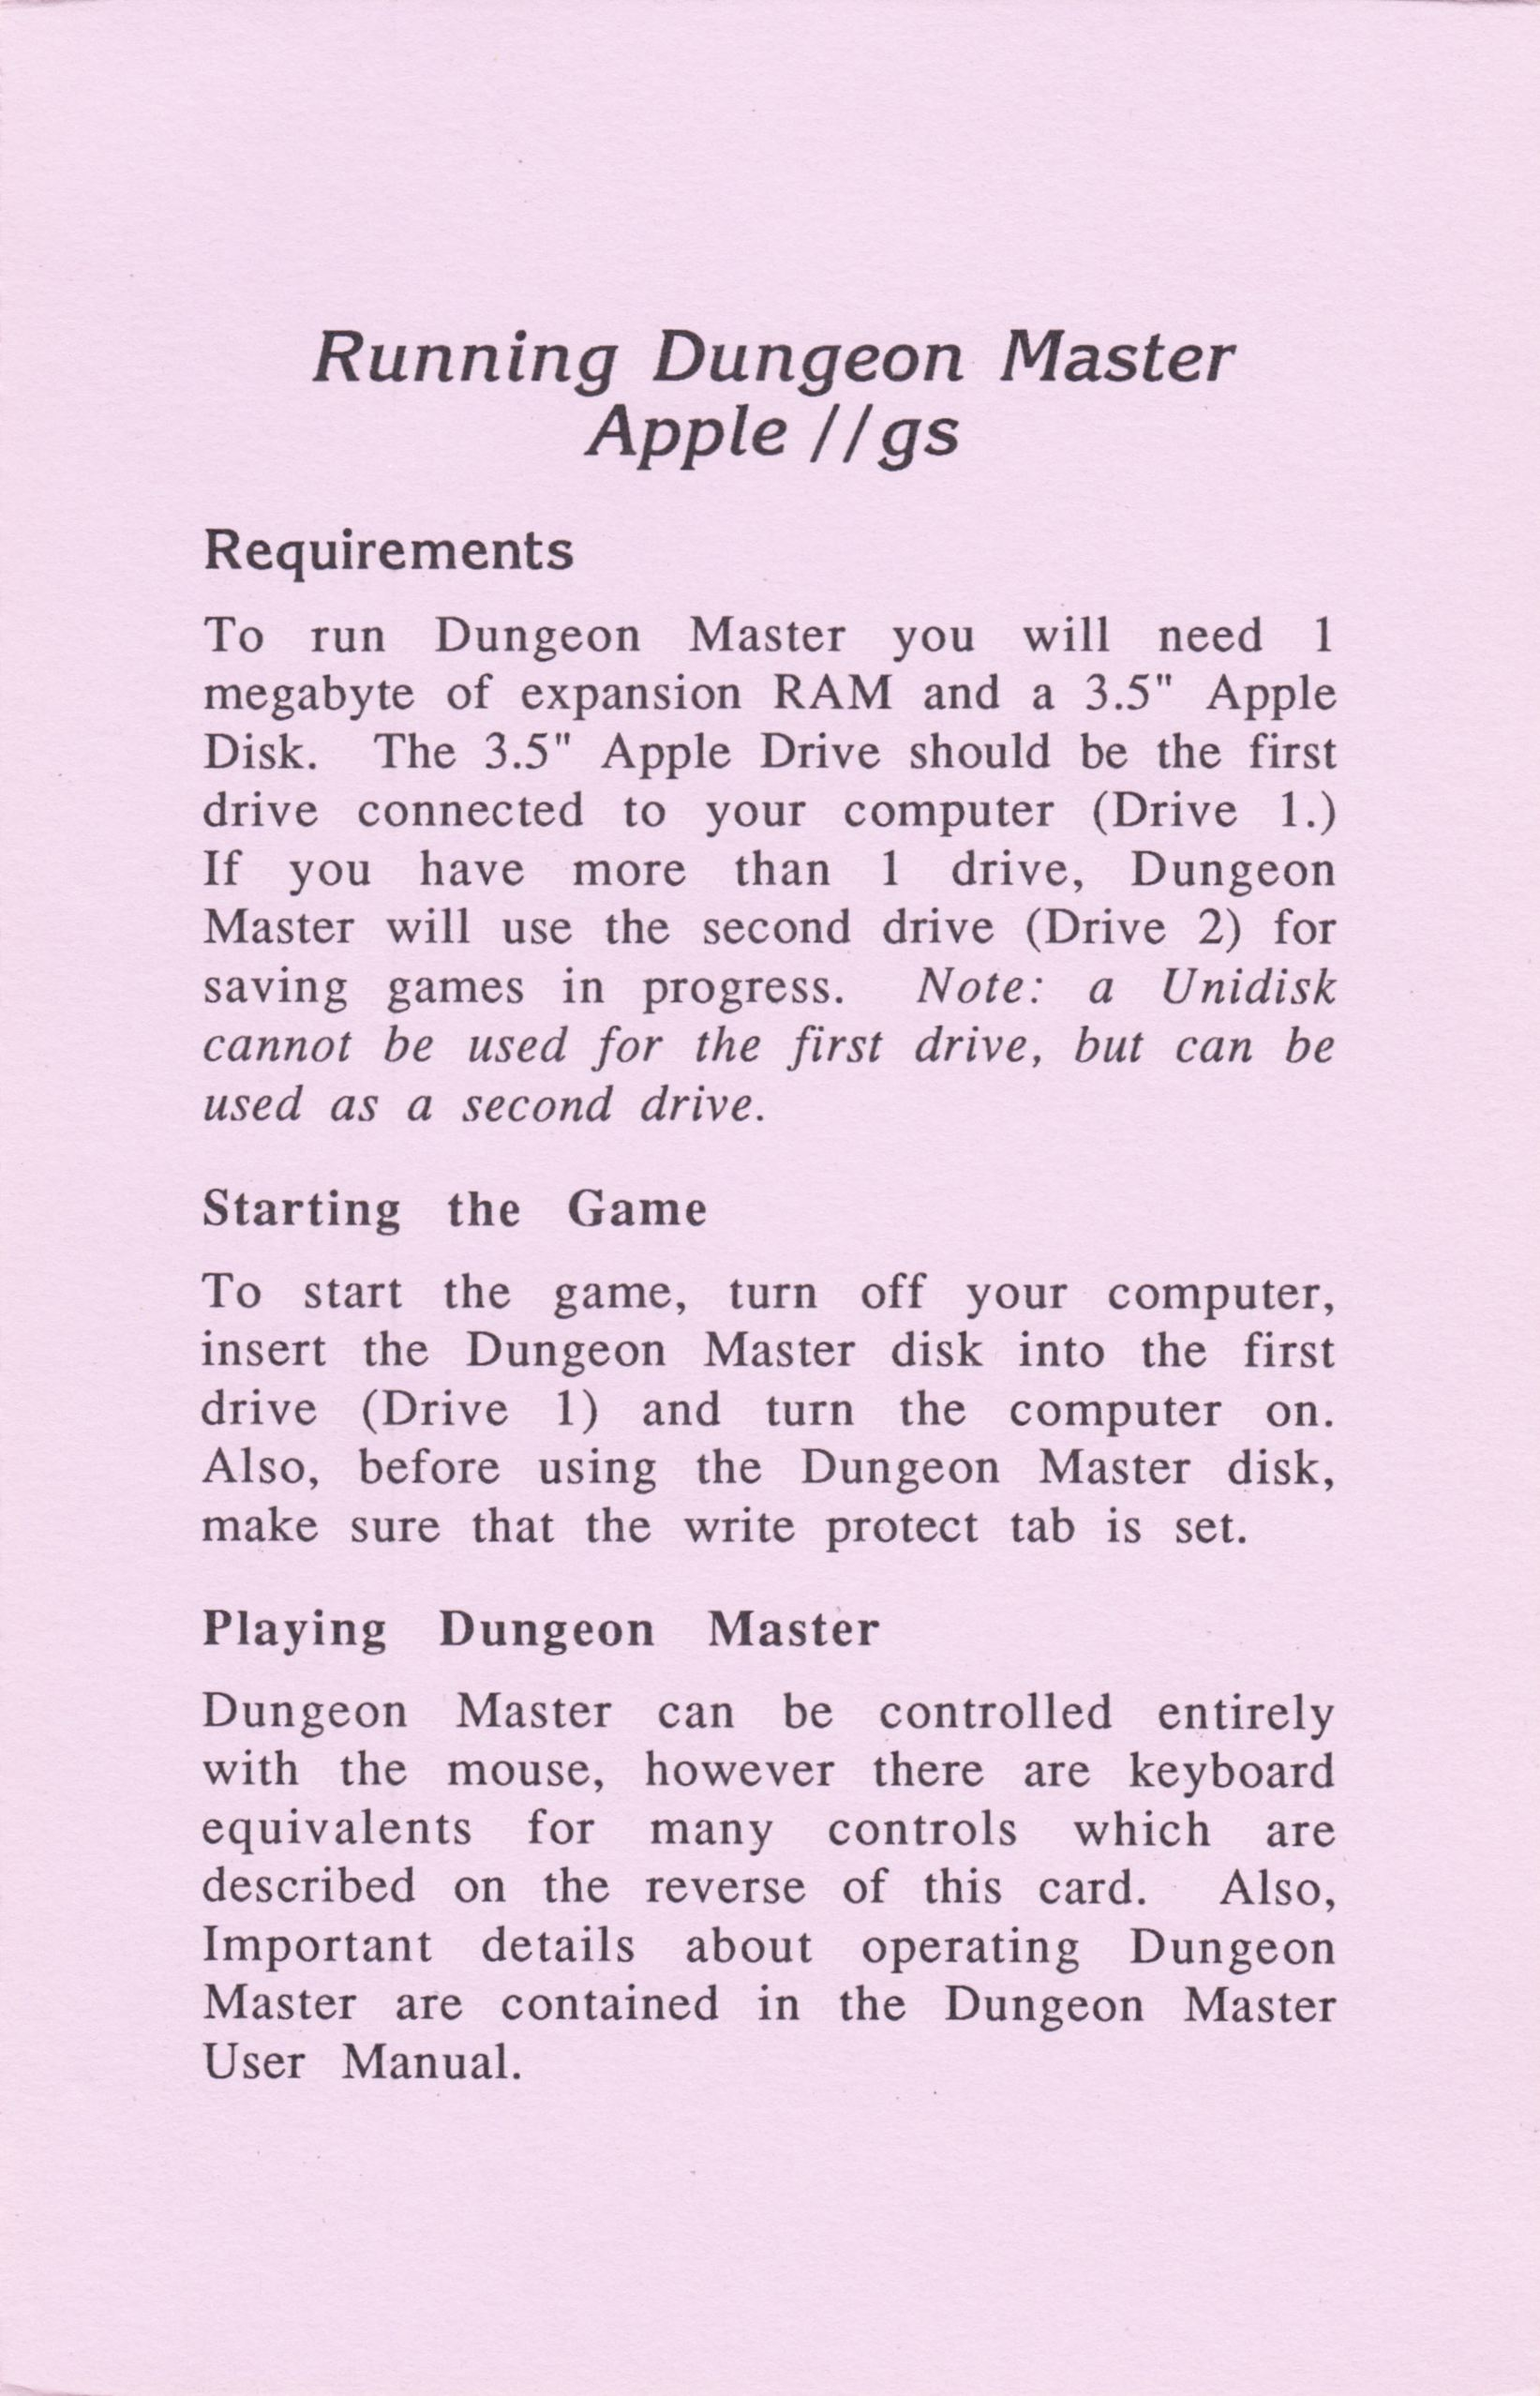 Game - Dungeon Master - US - Apple IIGS - Reference Card - Front - Scan